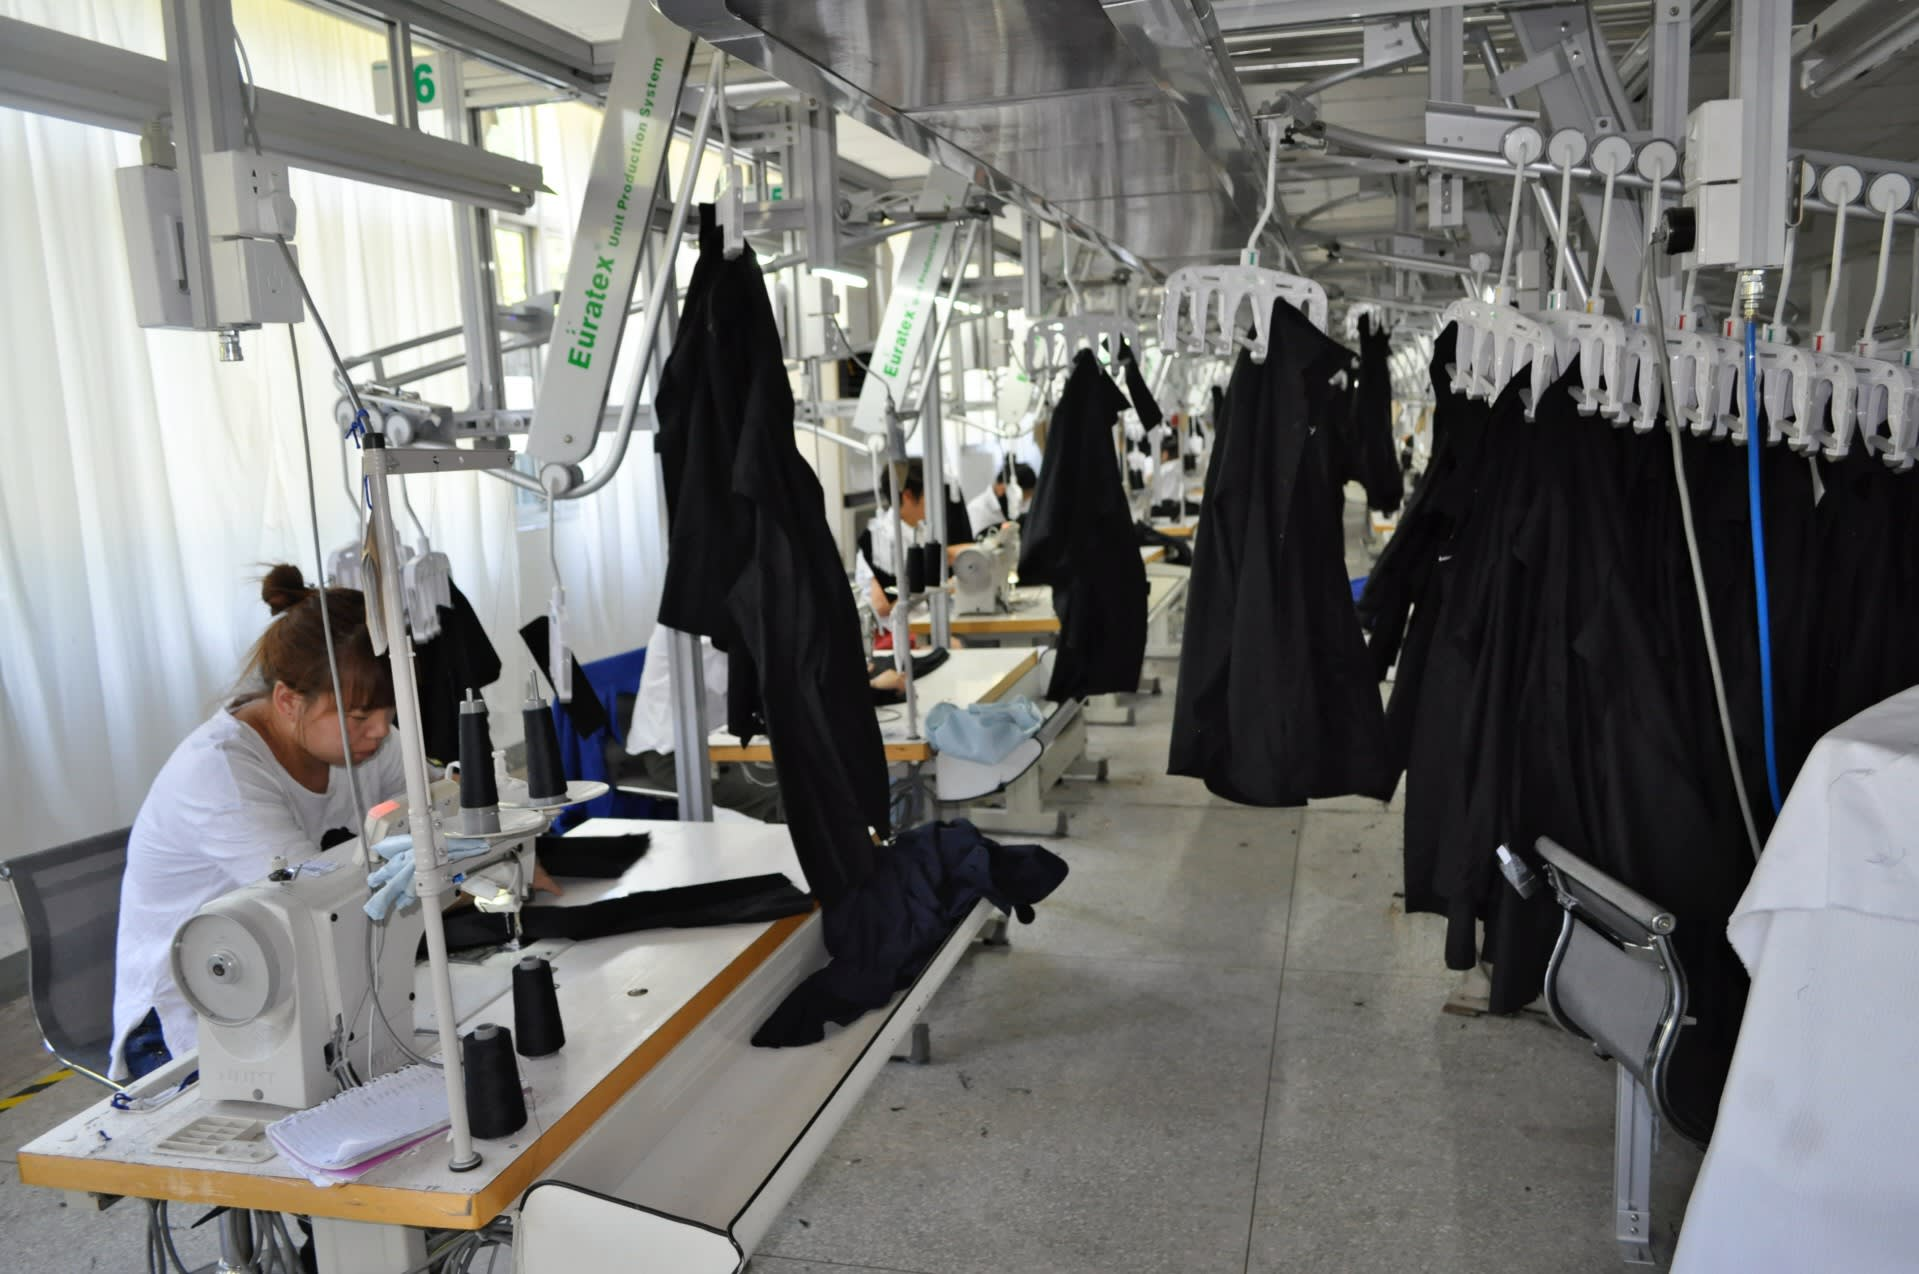 overseas clothing manufacturers clothes manufacturing business